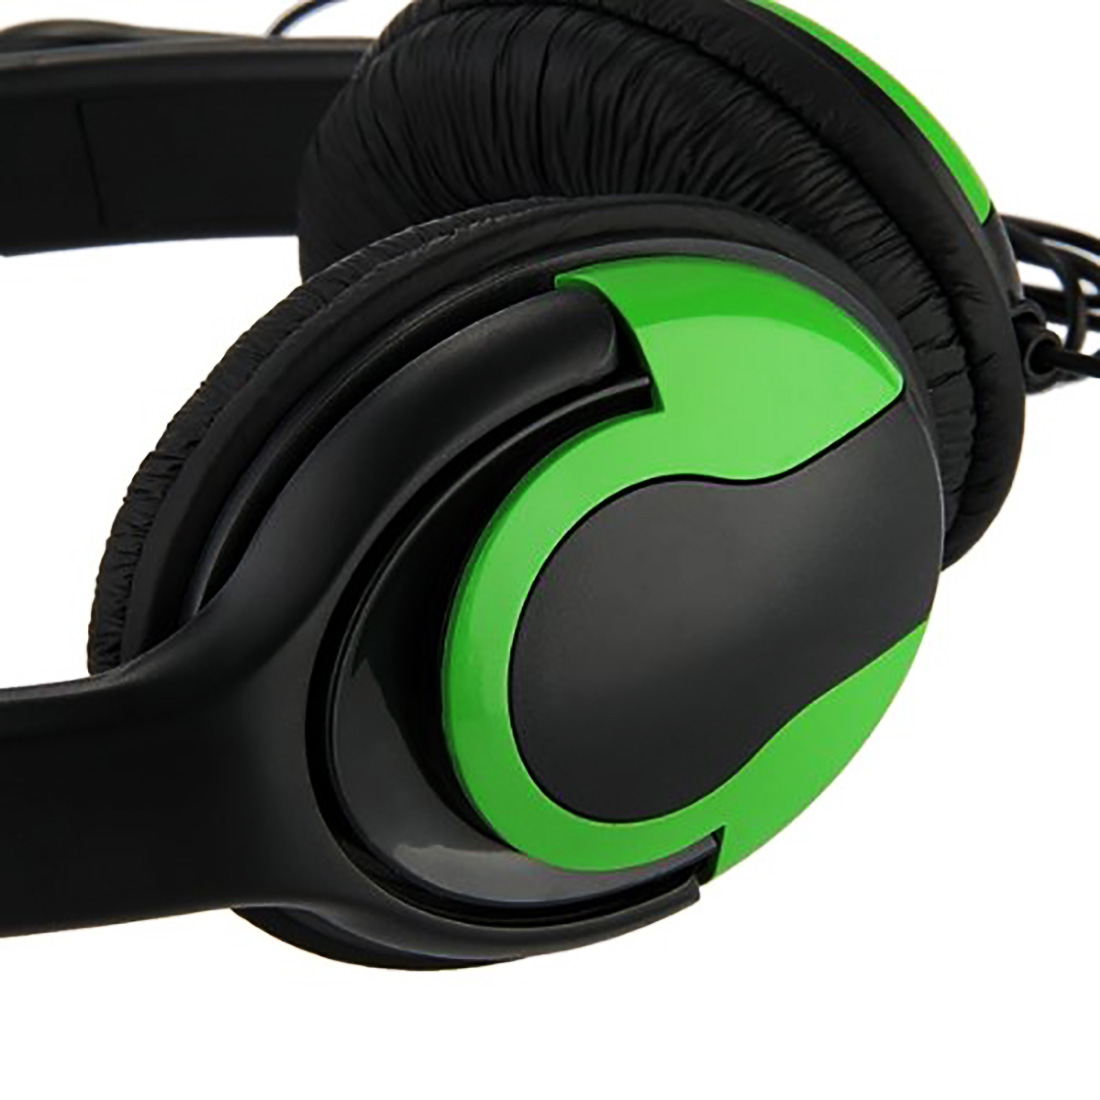 Marsnaska   Fashion Hot Selling Adjustable  Gaming Headset wired Earphone Headsets + Mic Microphone for Xbox360 black green 2 5mm plug headset w microphone for xbox360 xbox 360 slim black